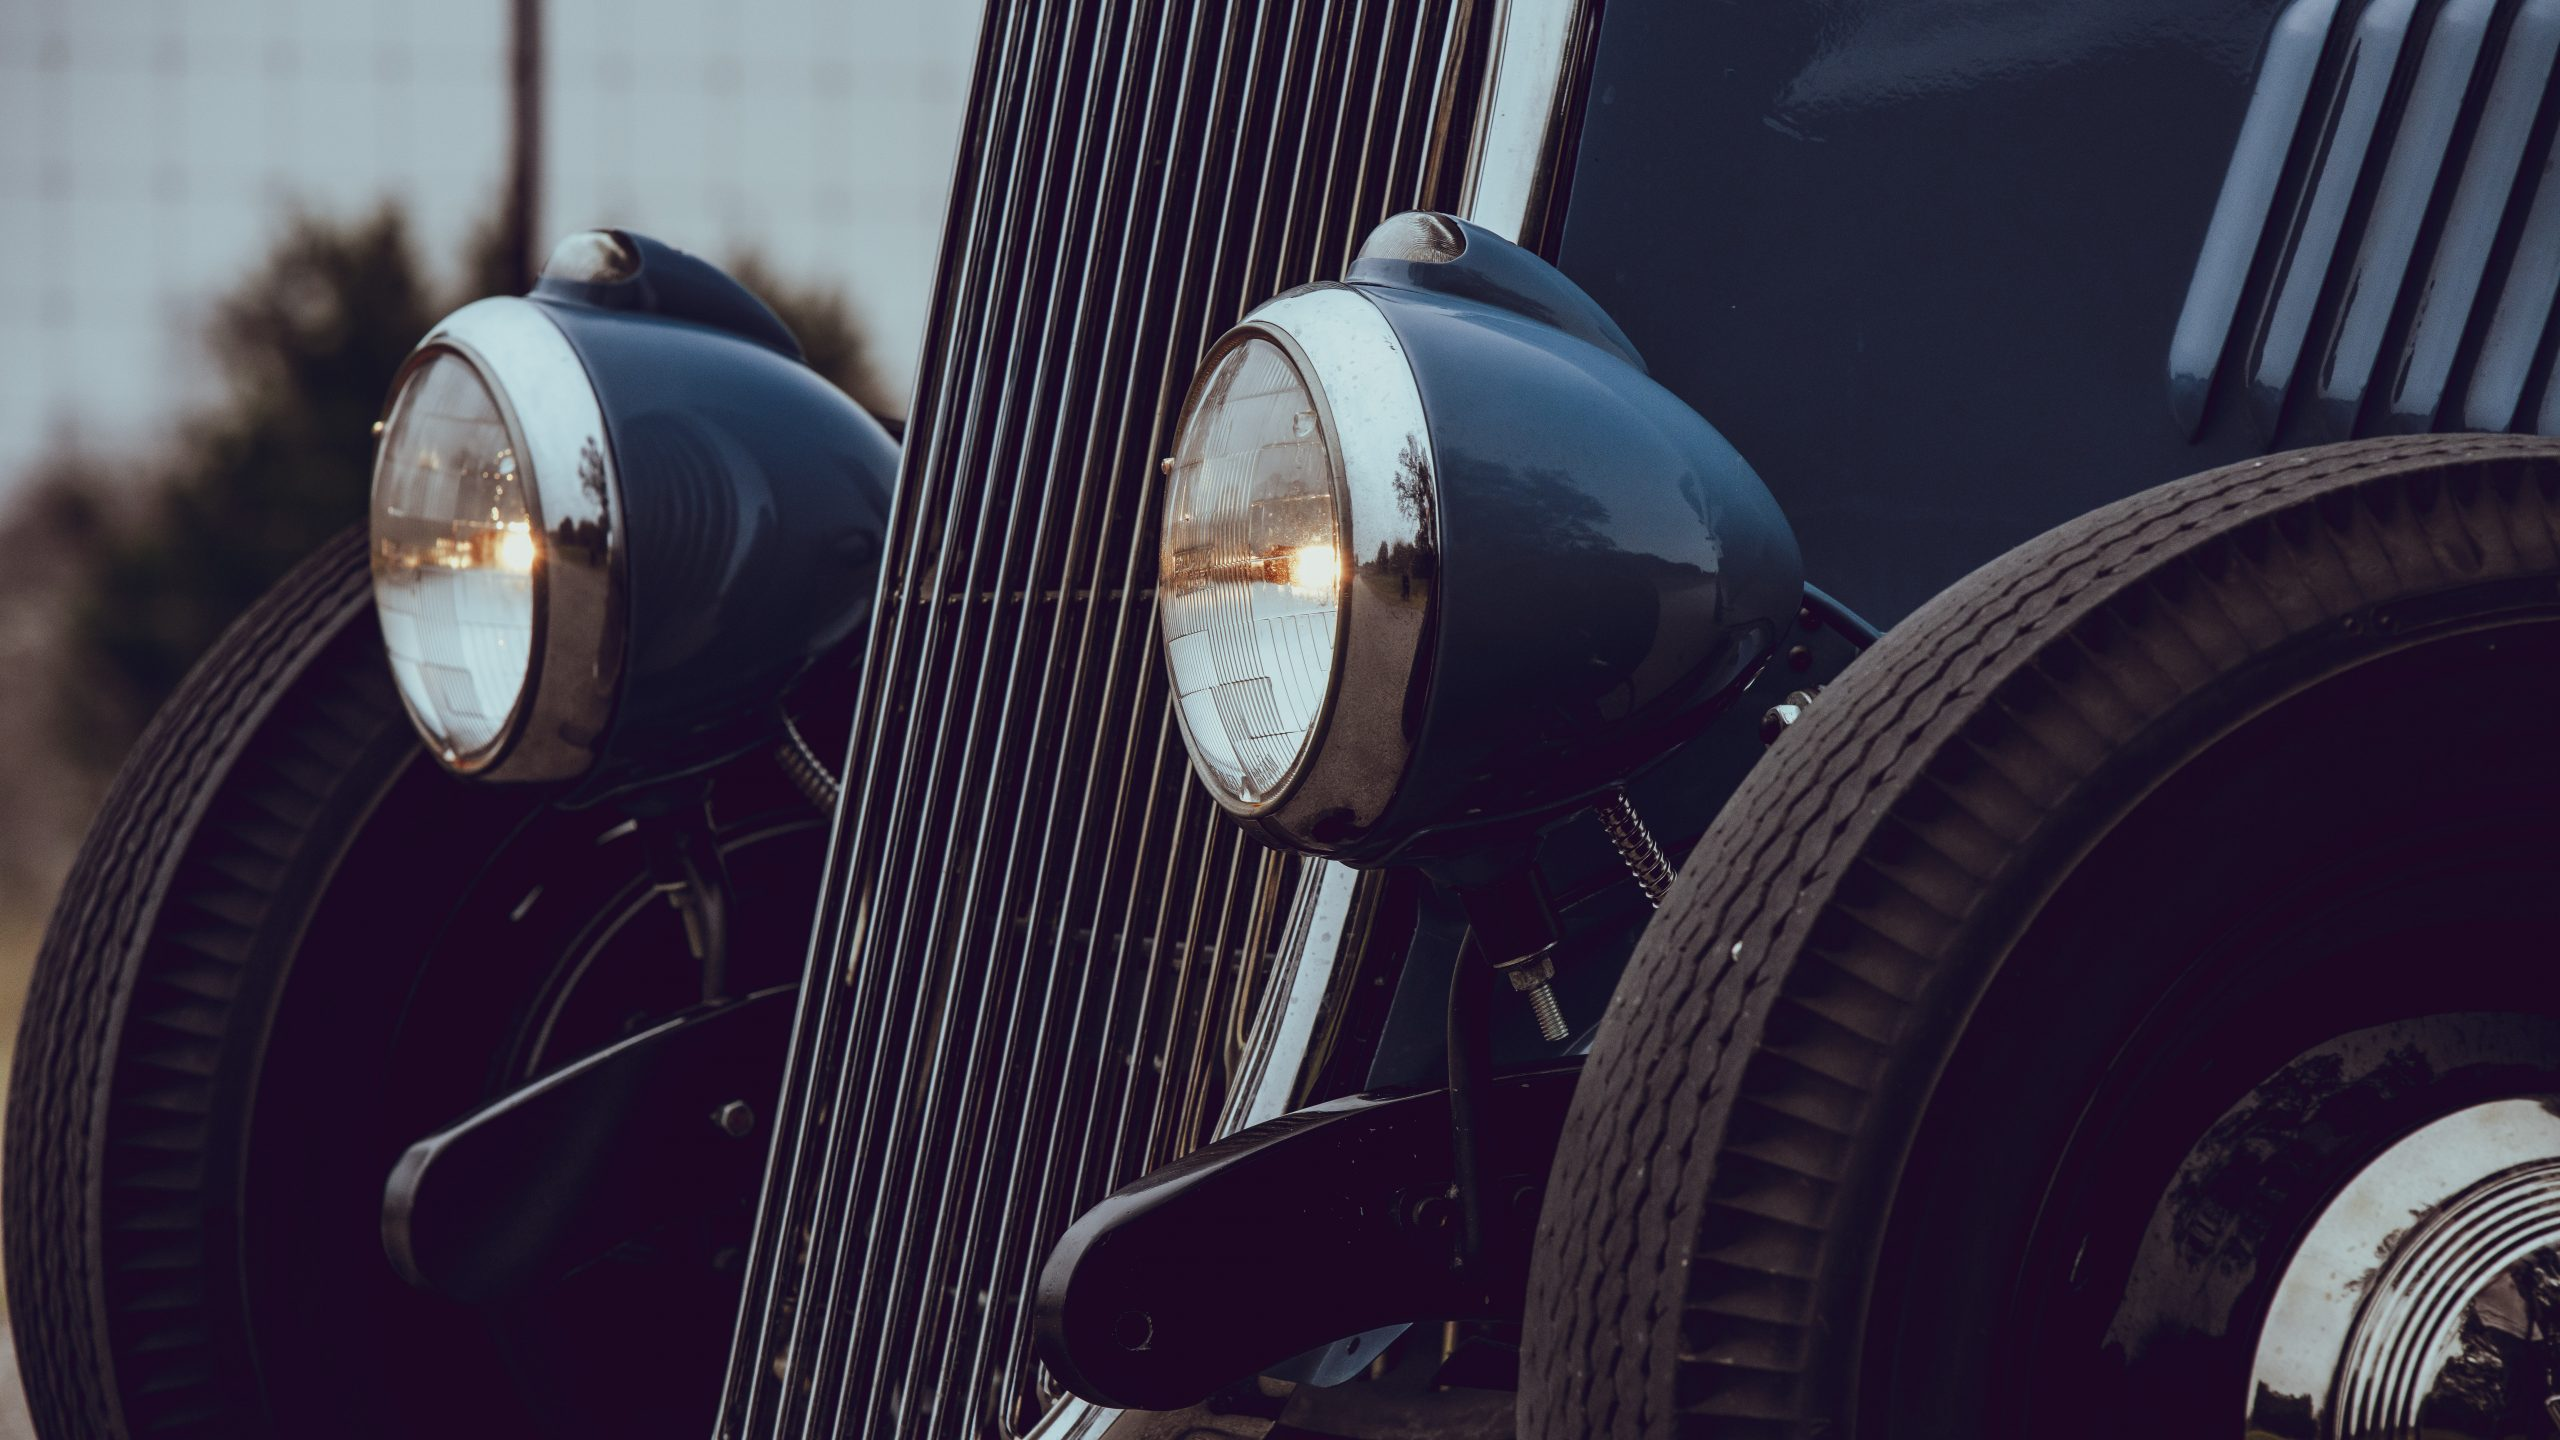 1933 Ford Coupe headlight detail